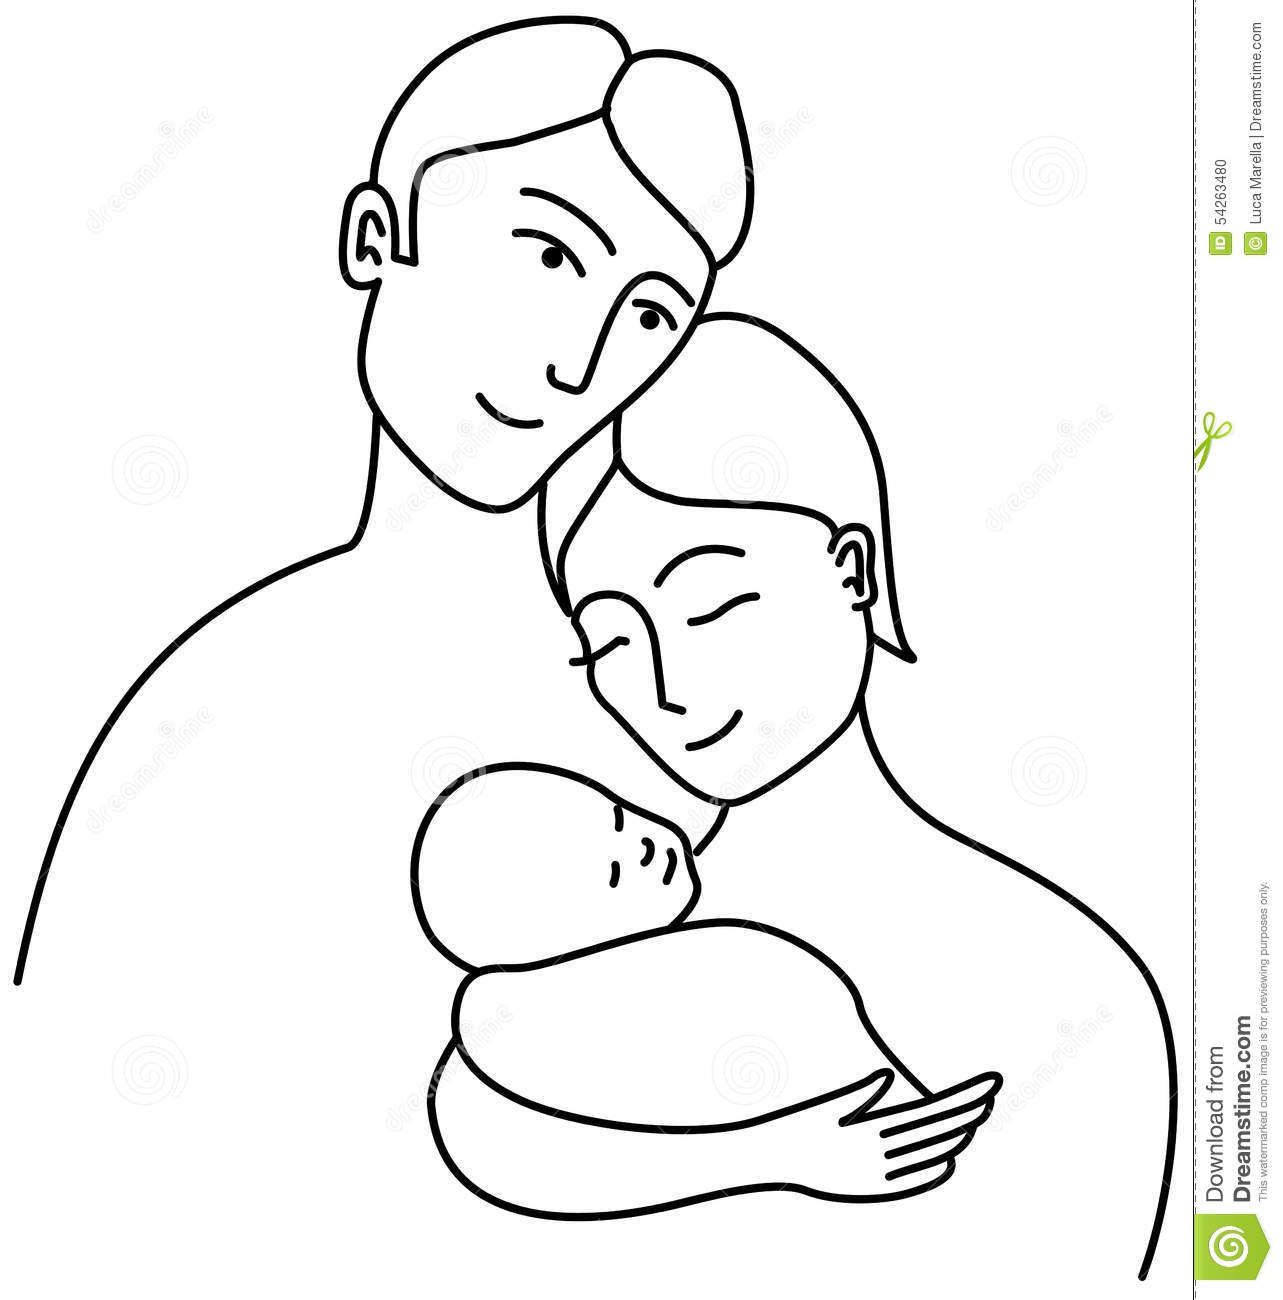 Line Art Baby : Family line drawing stock vector illustration of female